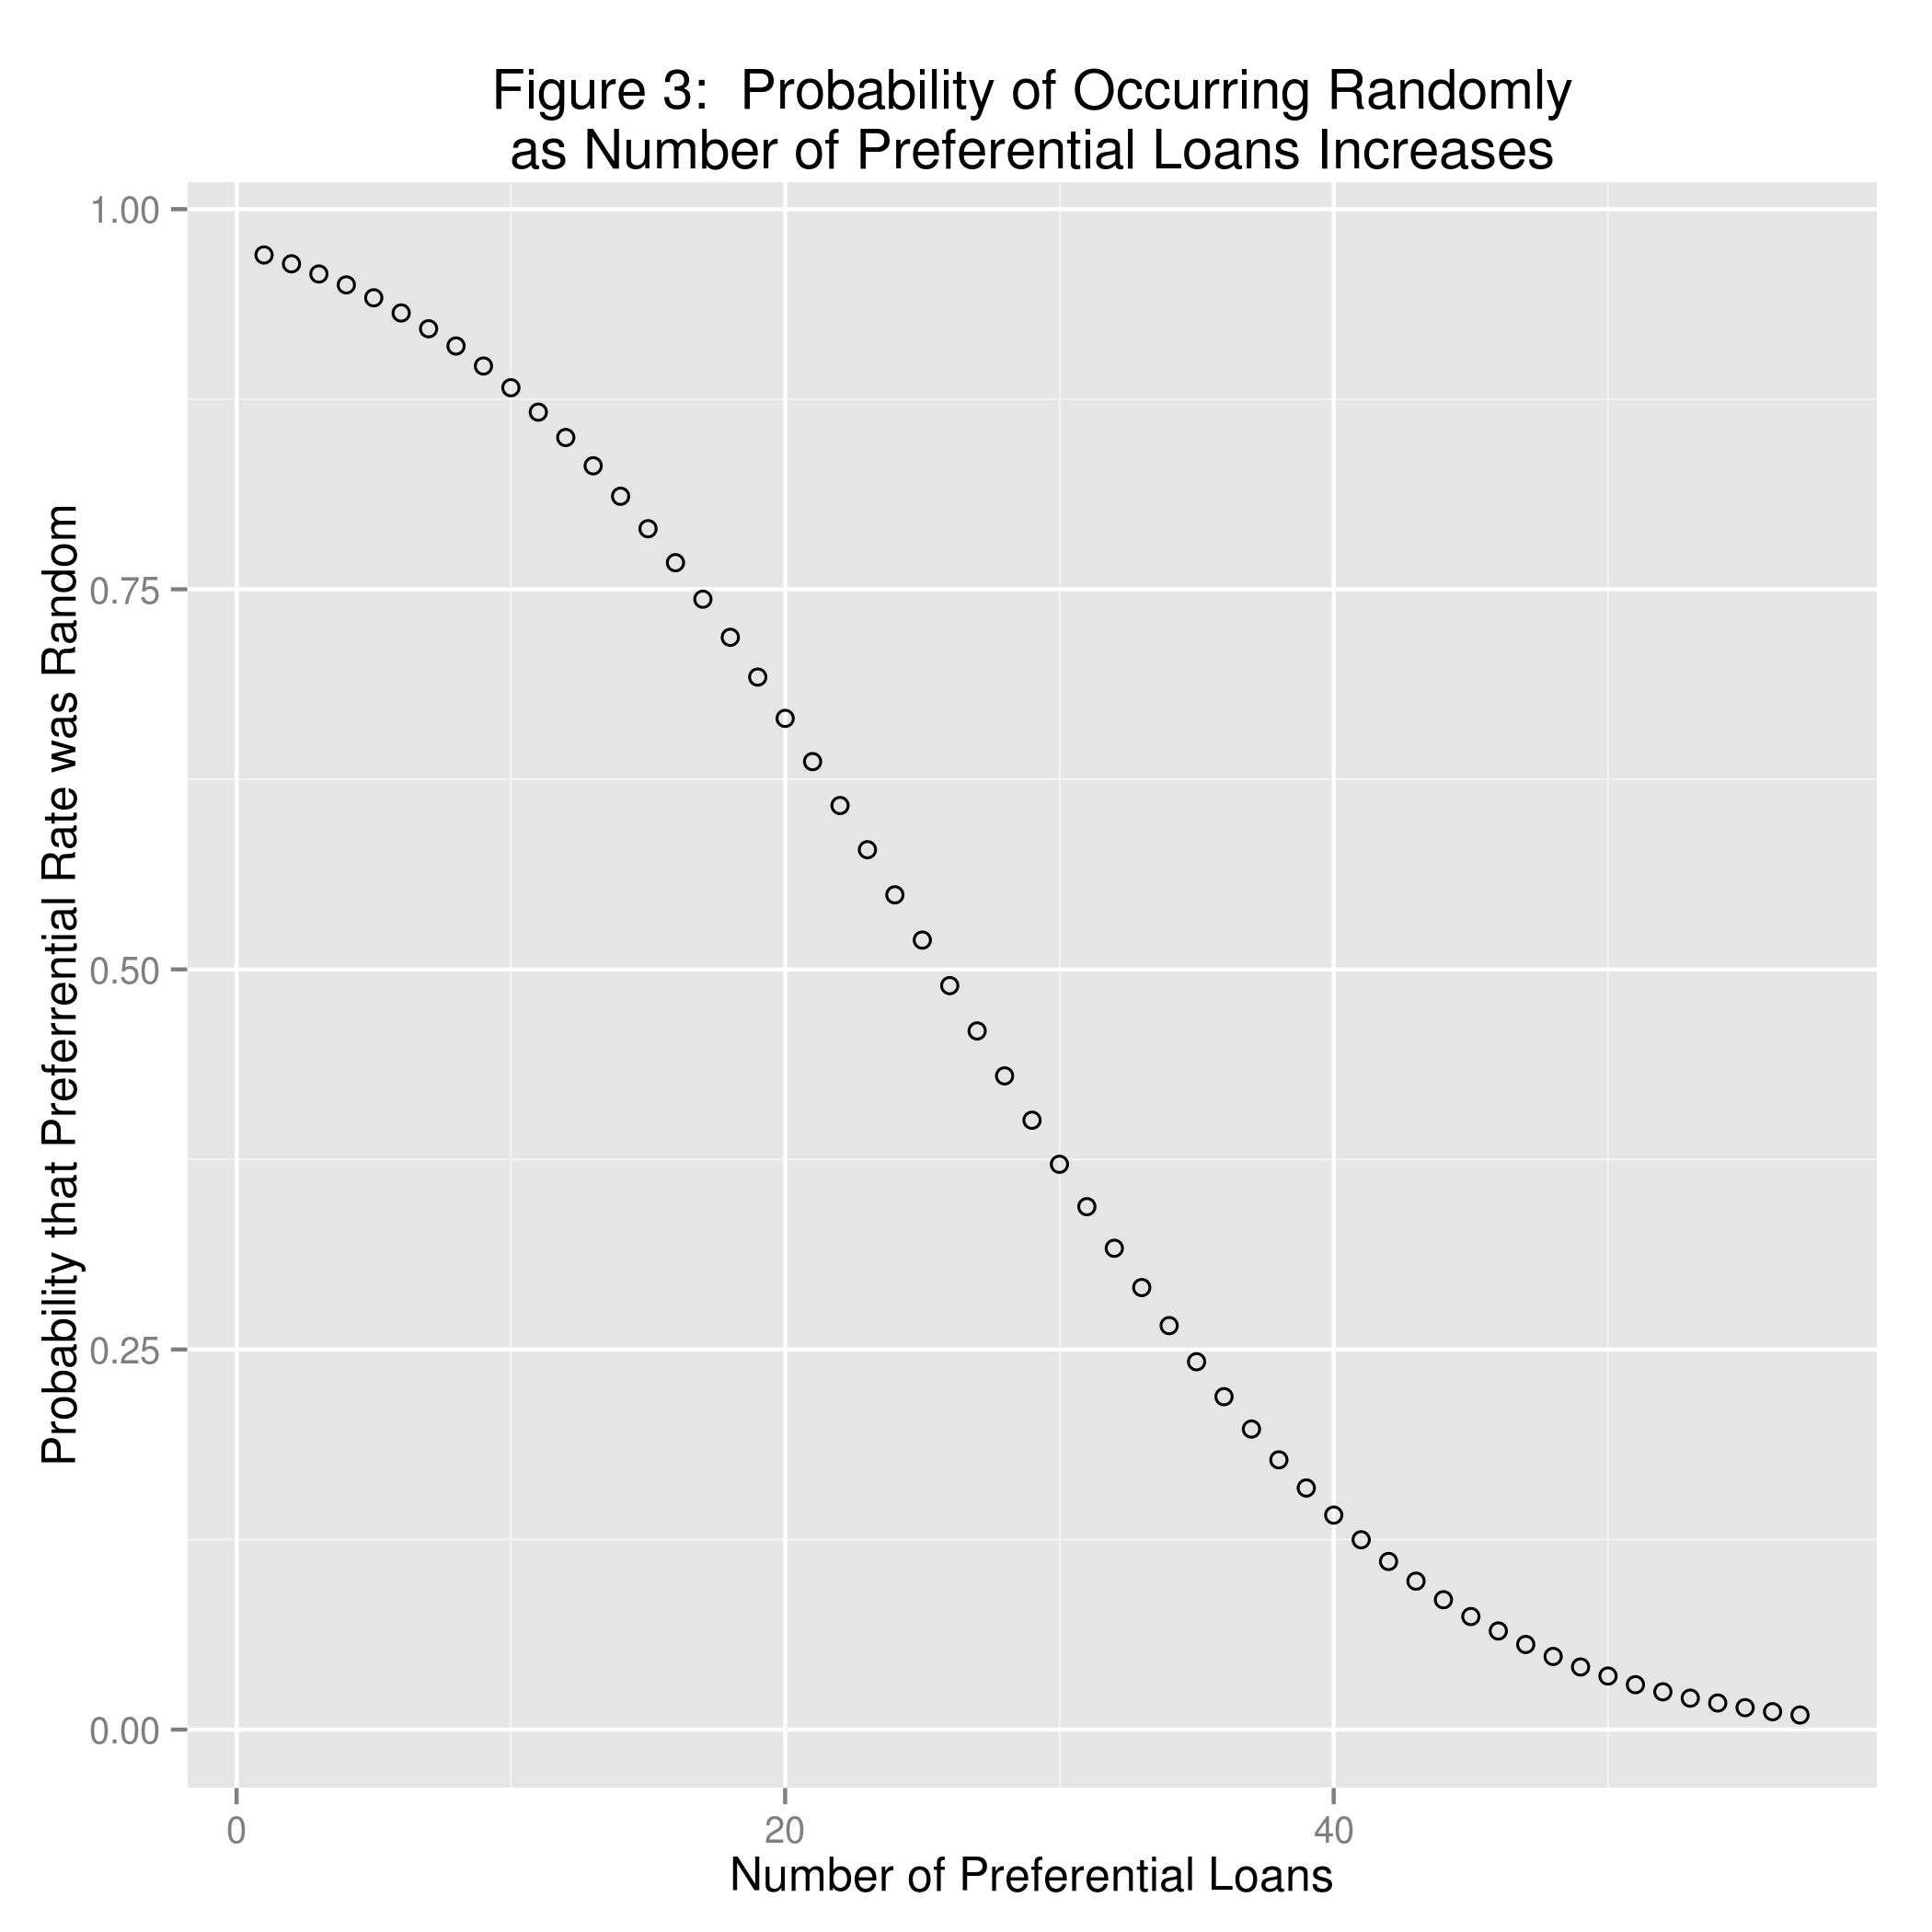 Figure 1:  Distribution of Interest Rates and Probability of Random occurrence for Normal Distribution of Interest Rates